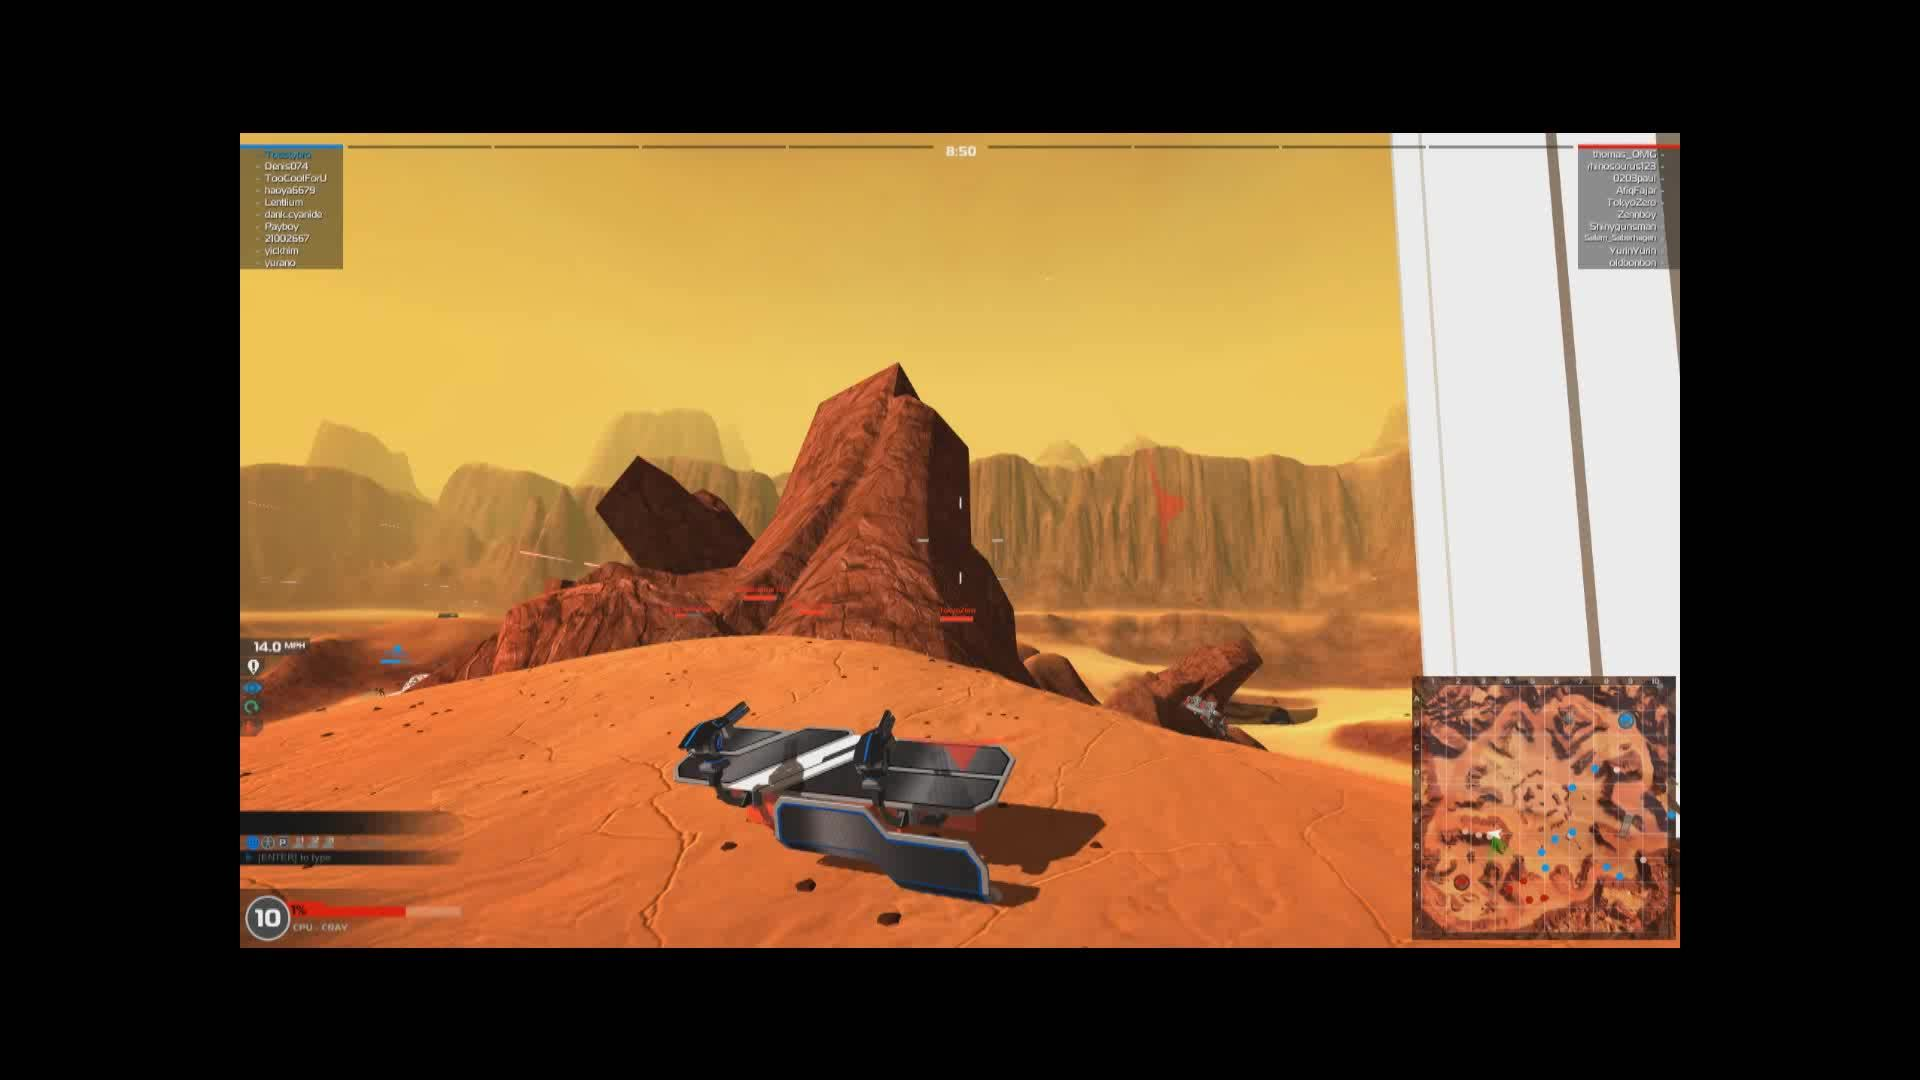 robocraft, Hm, FJ i think your missiles need a bit of work. (reddit) GIFs